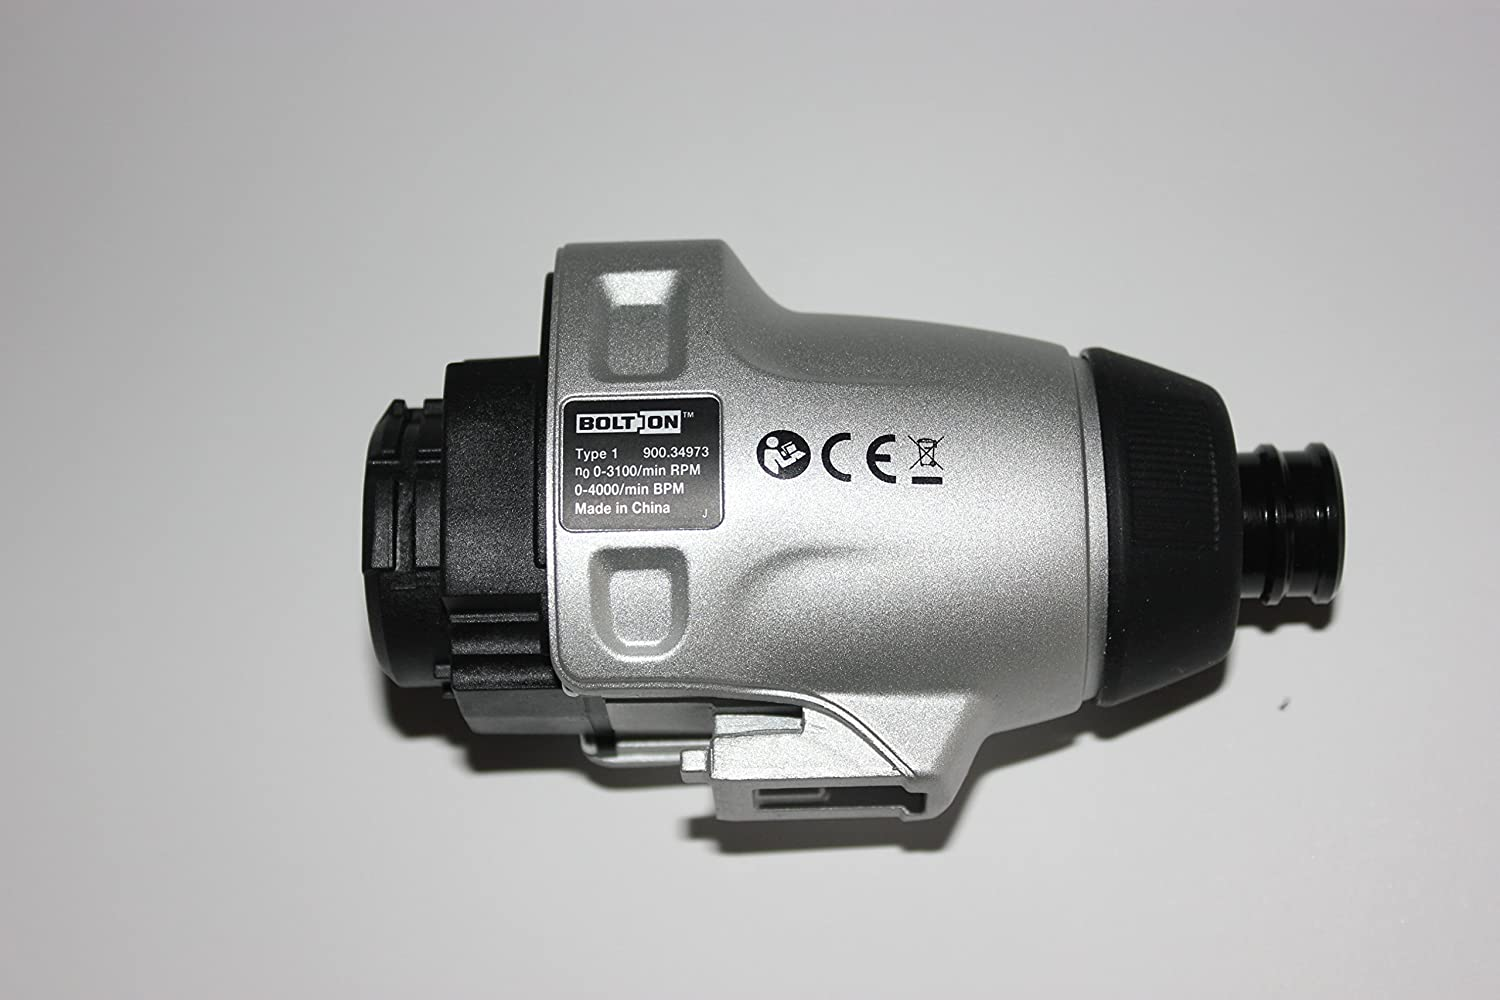 IMPACT DRIVER ATTACHMENT 1/4 INCH QUICK CONNECT HEX